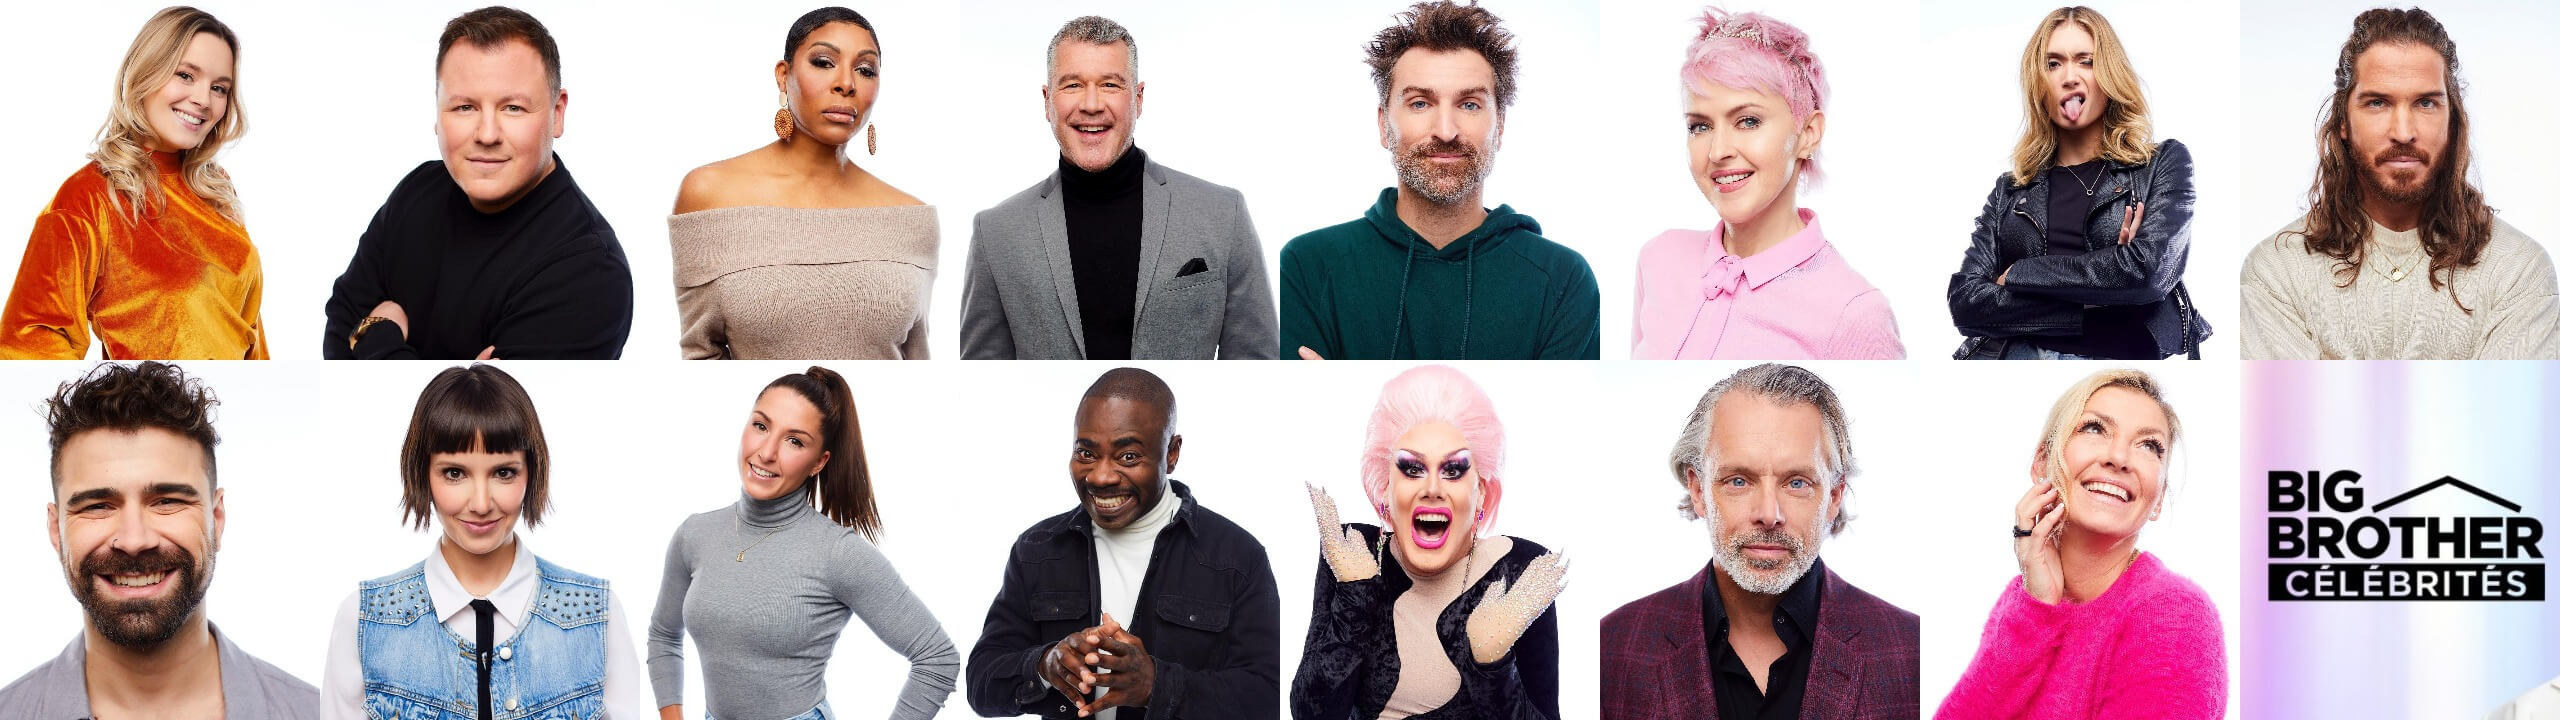 Poll - Vote For Your Favourite Big Brother Celebrity ...